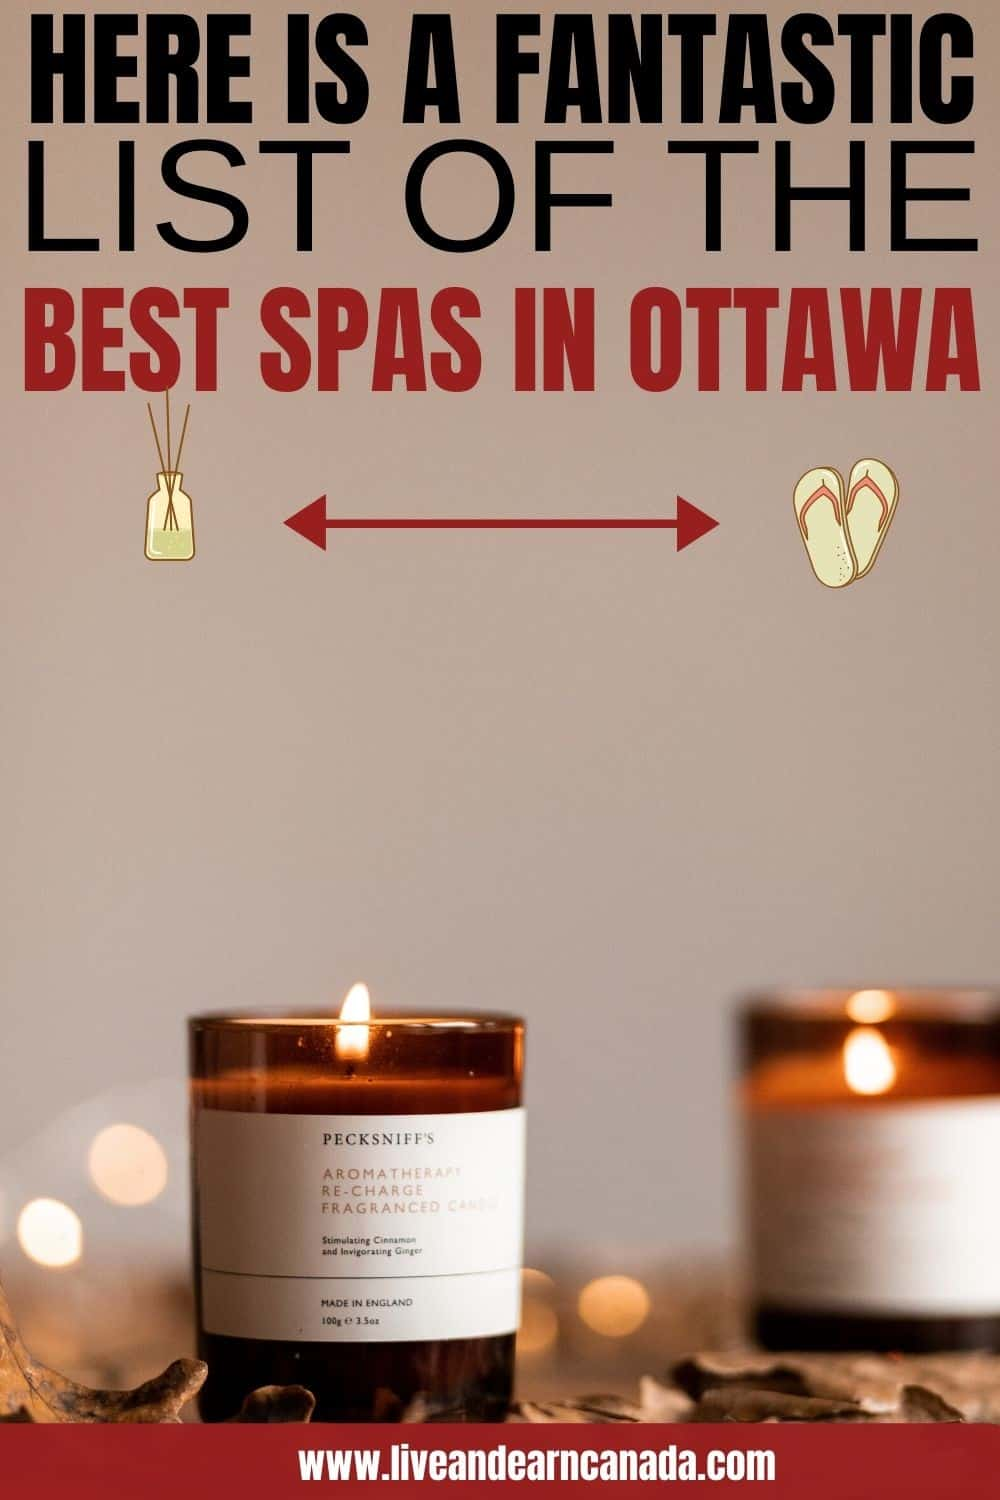 Are you looking for great things to do in Ottawa? Why not visit some of Ottawa's Spas. You can explore the best Spas in Ottawa today by visiting what we recommend. Check out the BEST SPA In Ottawa today! #Ottawaspa